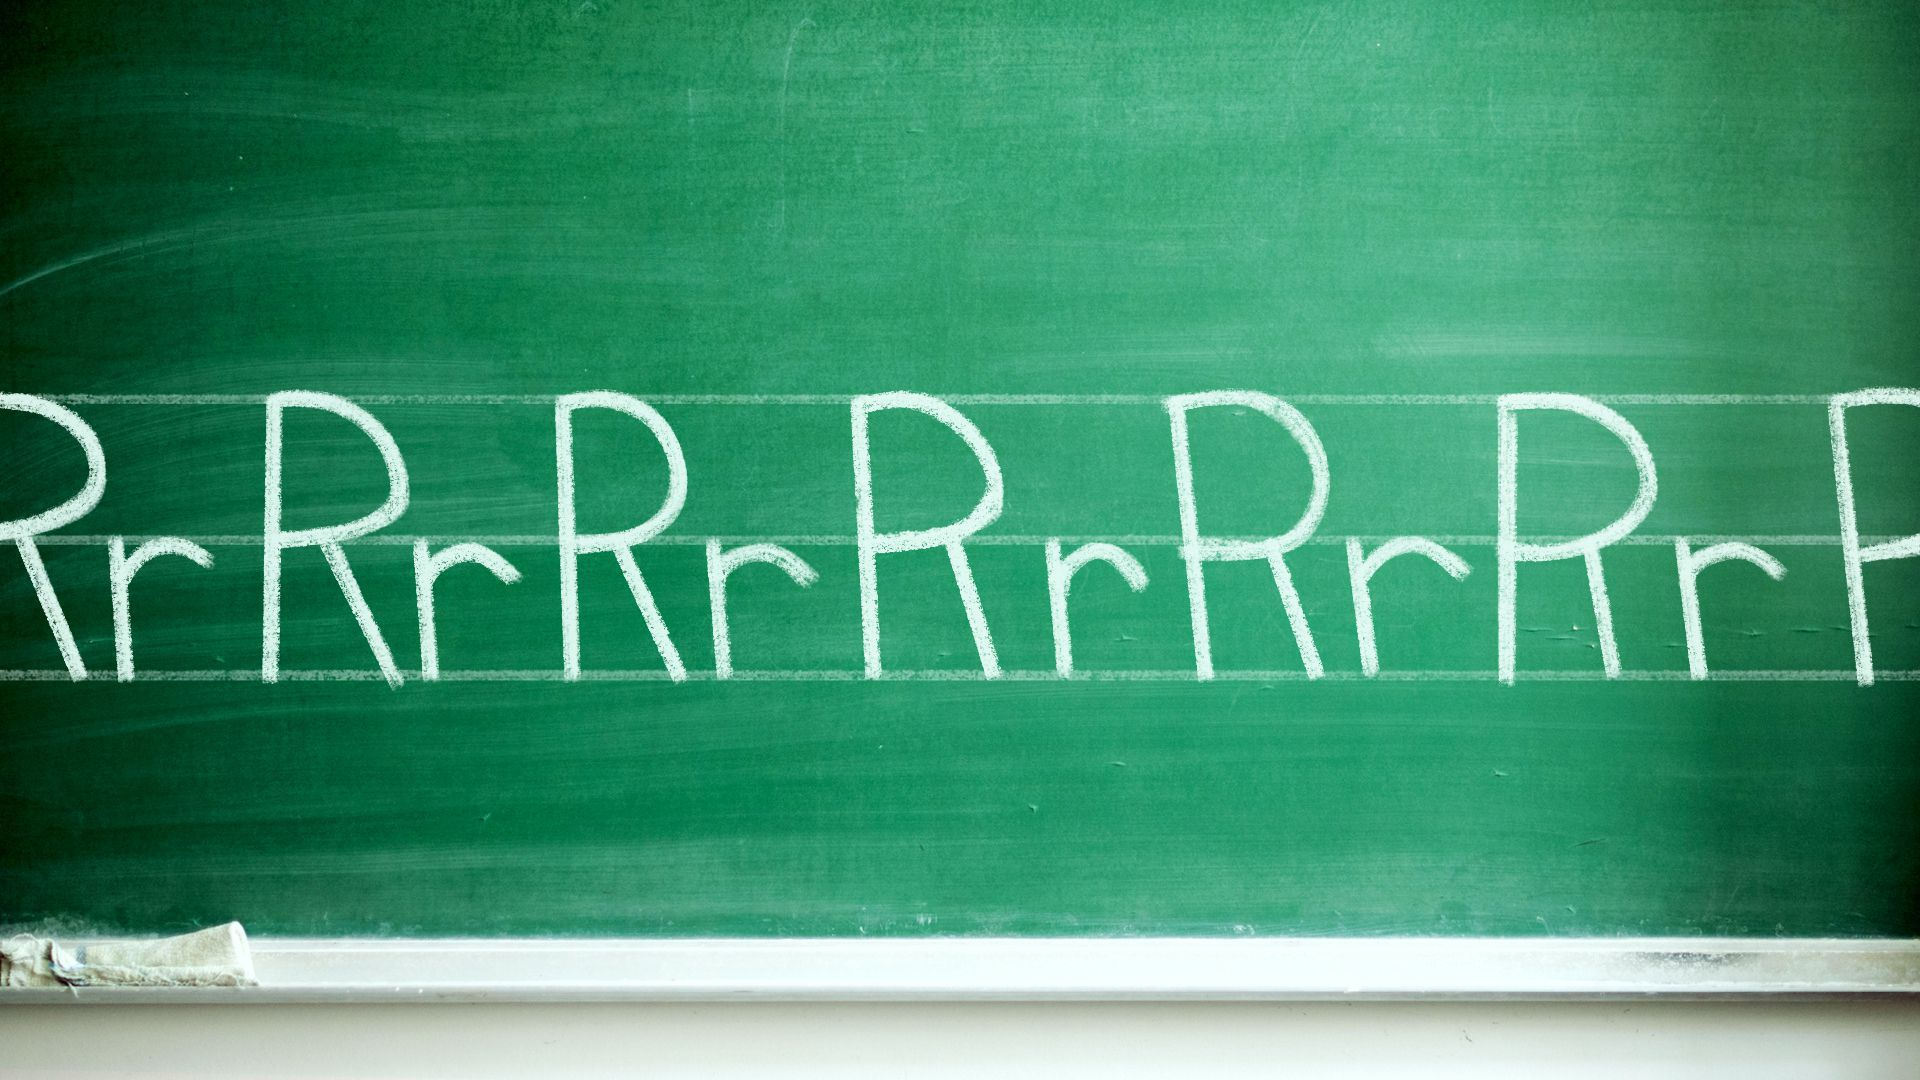 A chalkboard with capitalized and lowercase R's.